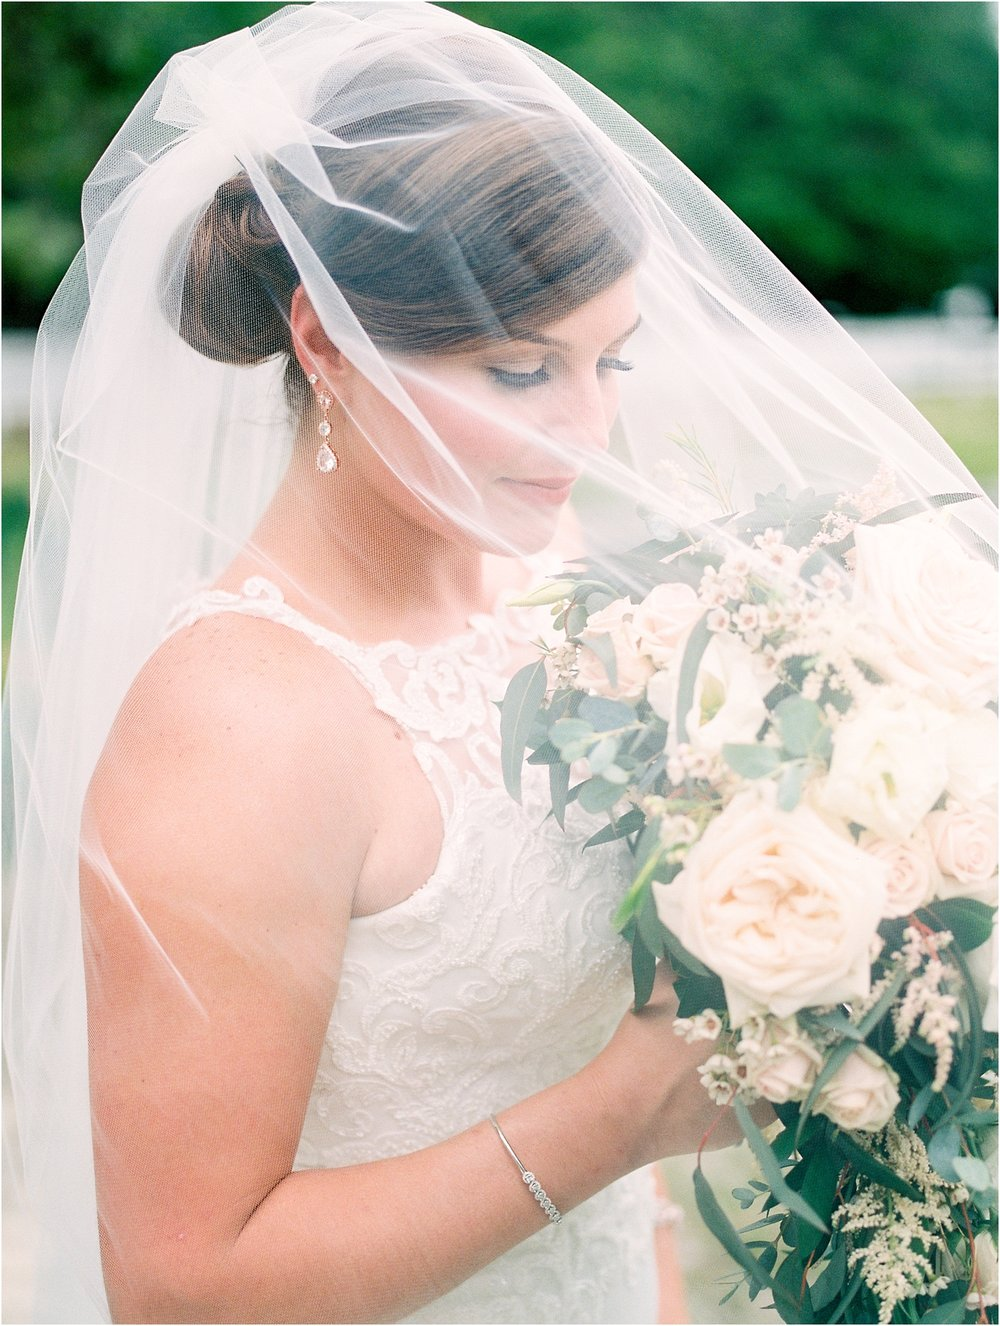 Lisa Silva Photography- Ponte Vedra Beach, St. Augustine and Jacksonville, Florida Fine Art Film Wedding and Boudoir Photography- Elegant Blush and Navy Wedding at Chandler Oaks Barn in St. Augustine, Florida_0025 0.jpg